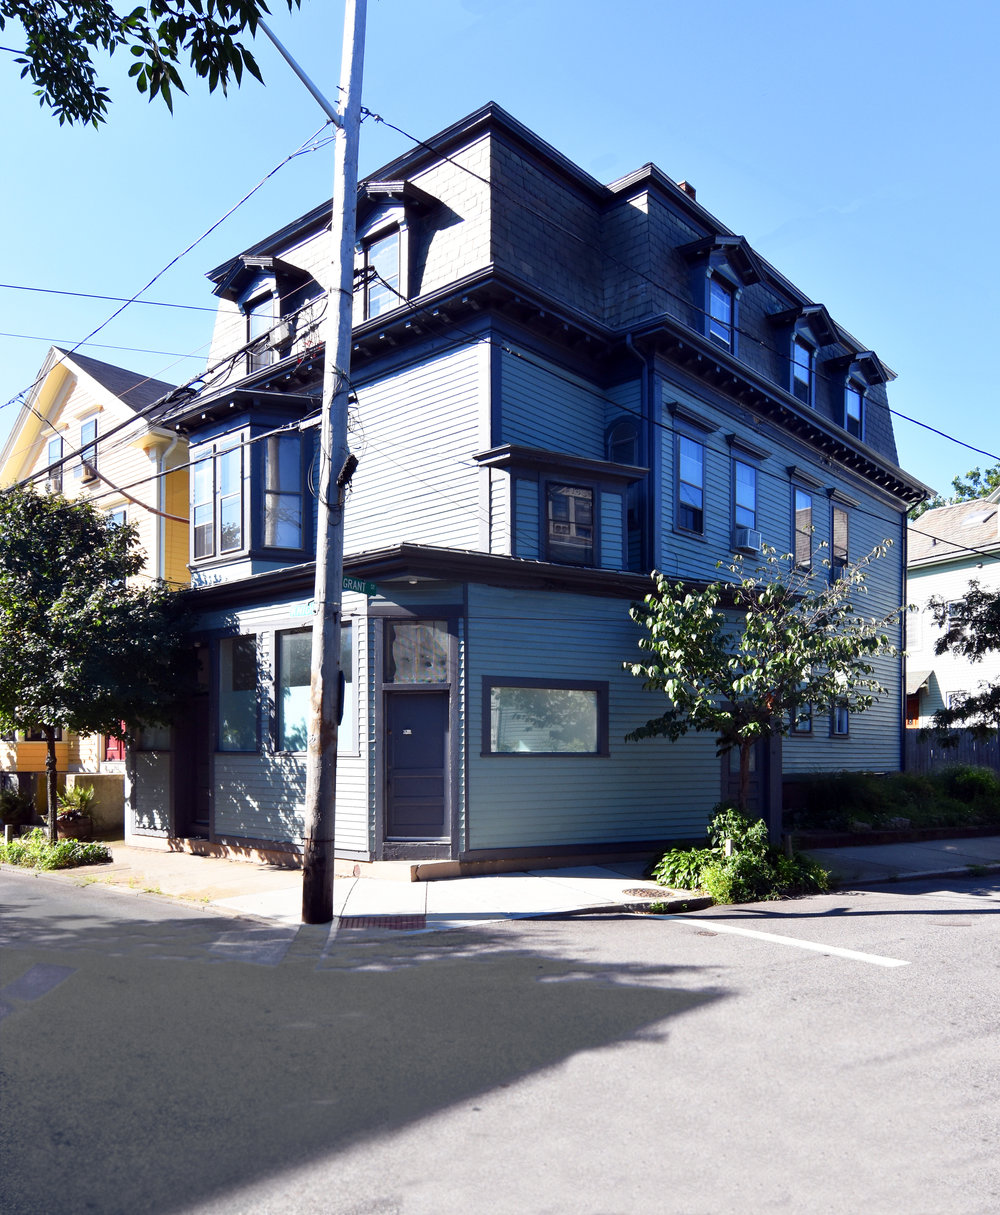 WBNA HOUSE TOUR  FROM VACANT TO VIBRANT 263 Knight Street   BUY TICKETS